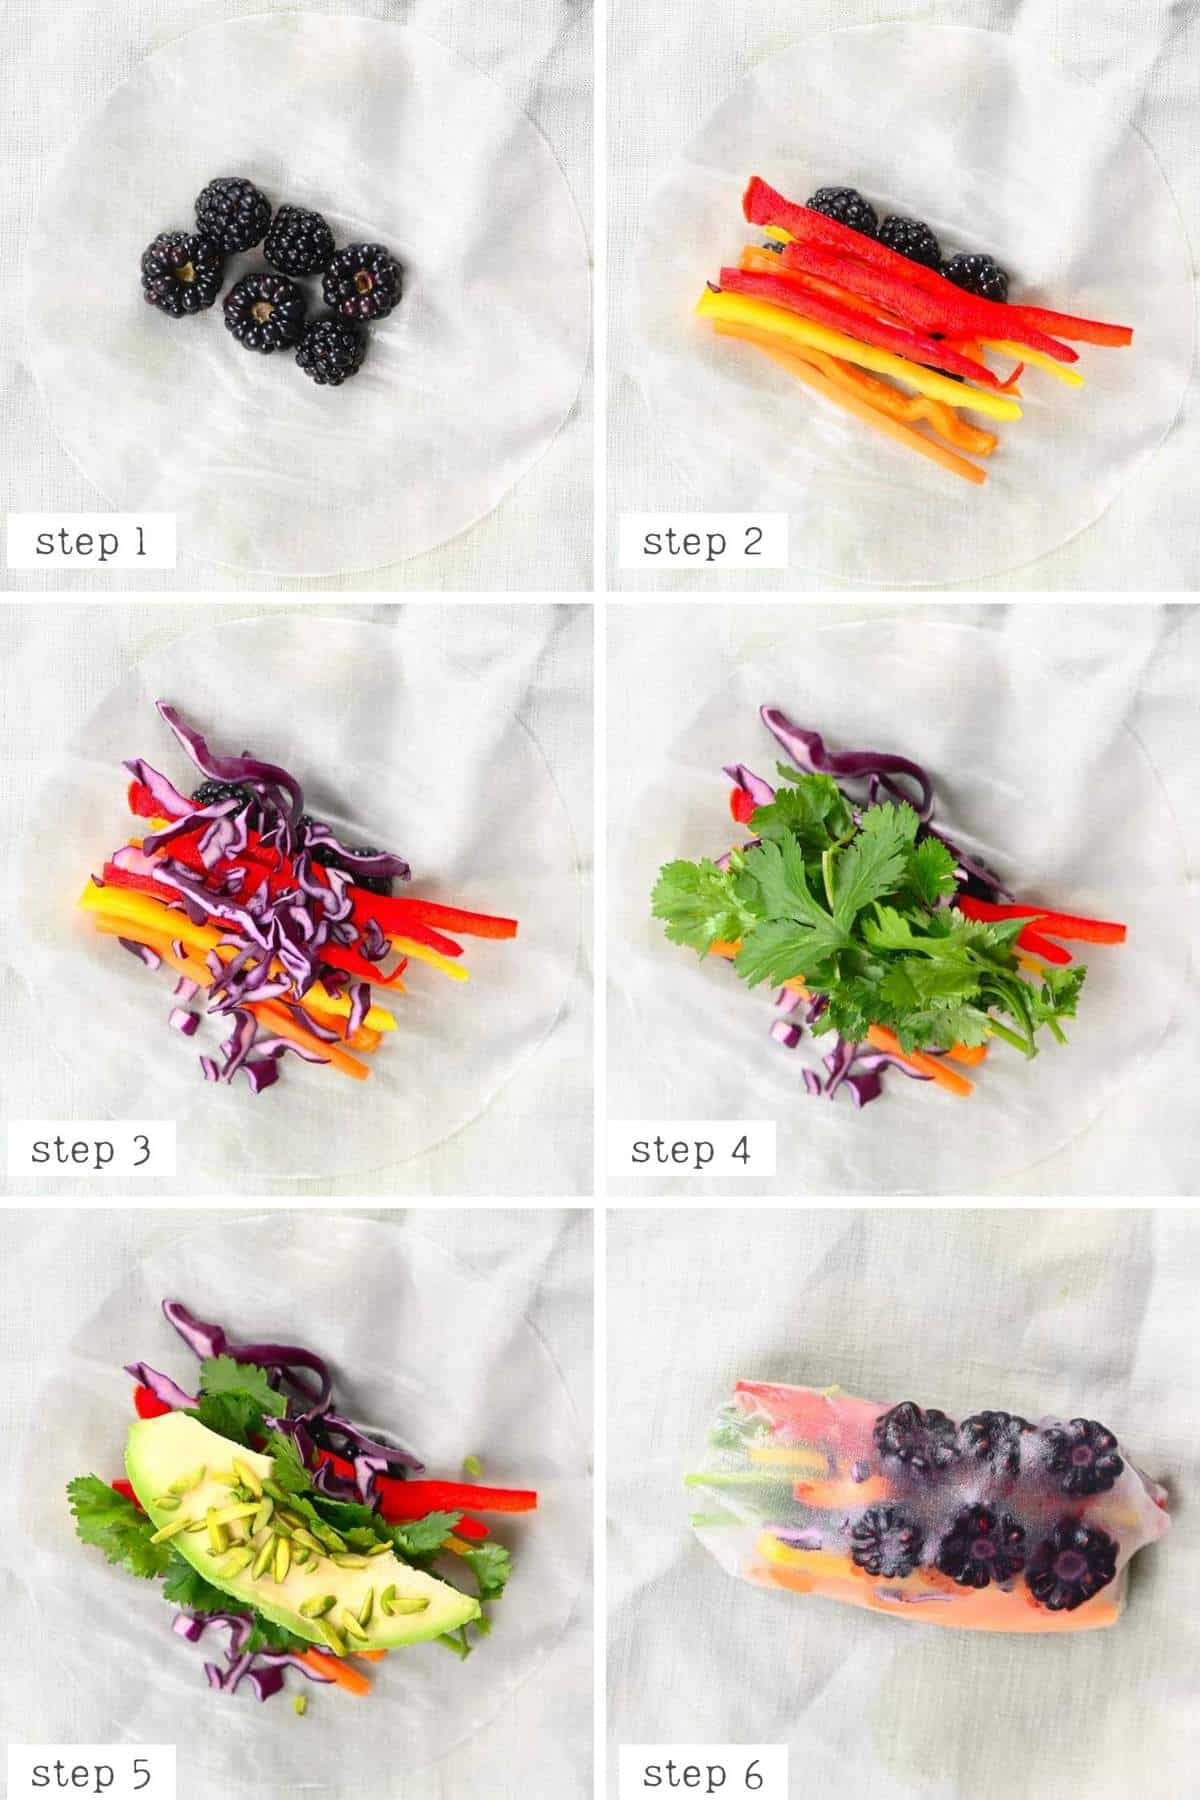 steps for making rainbow rice paper roll